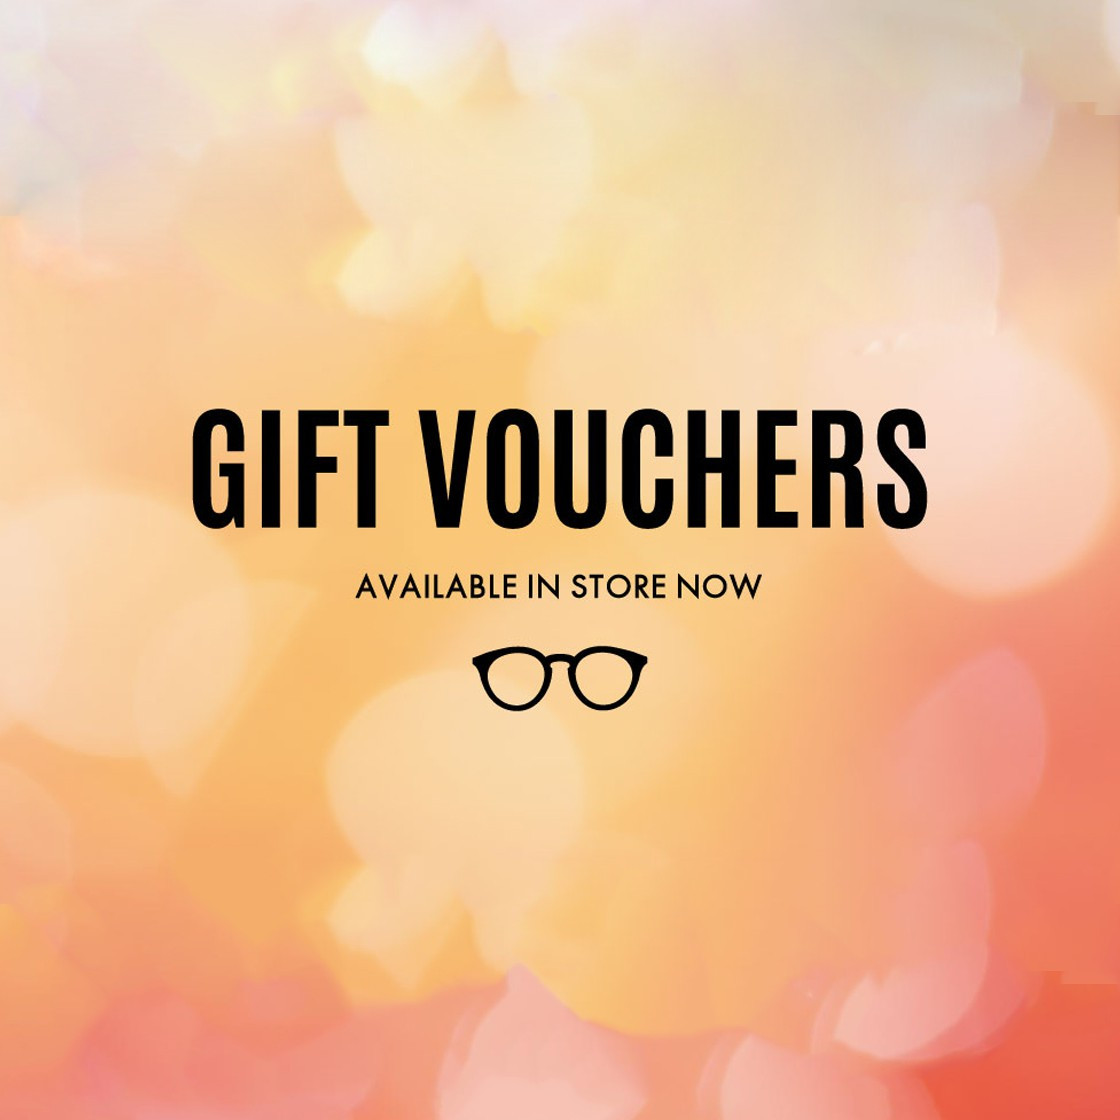 specials/gift-vouchers.title